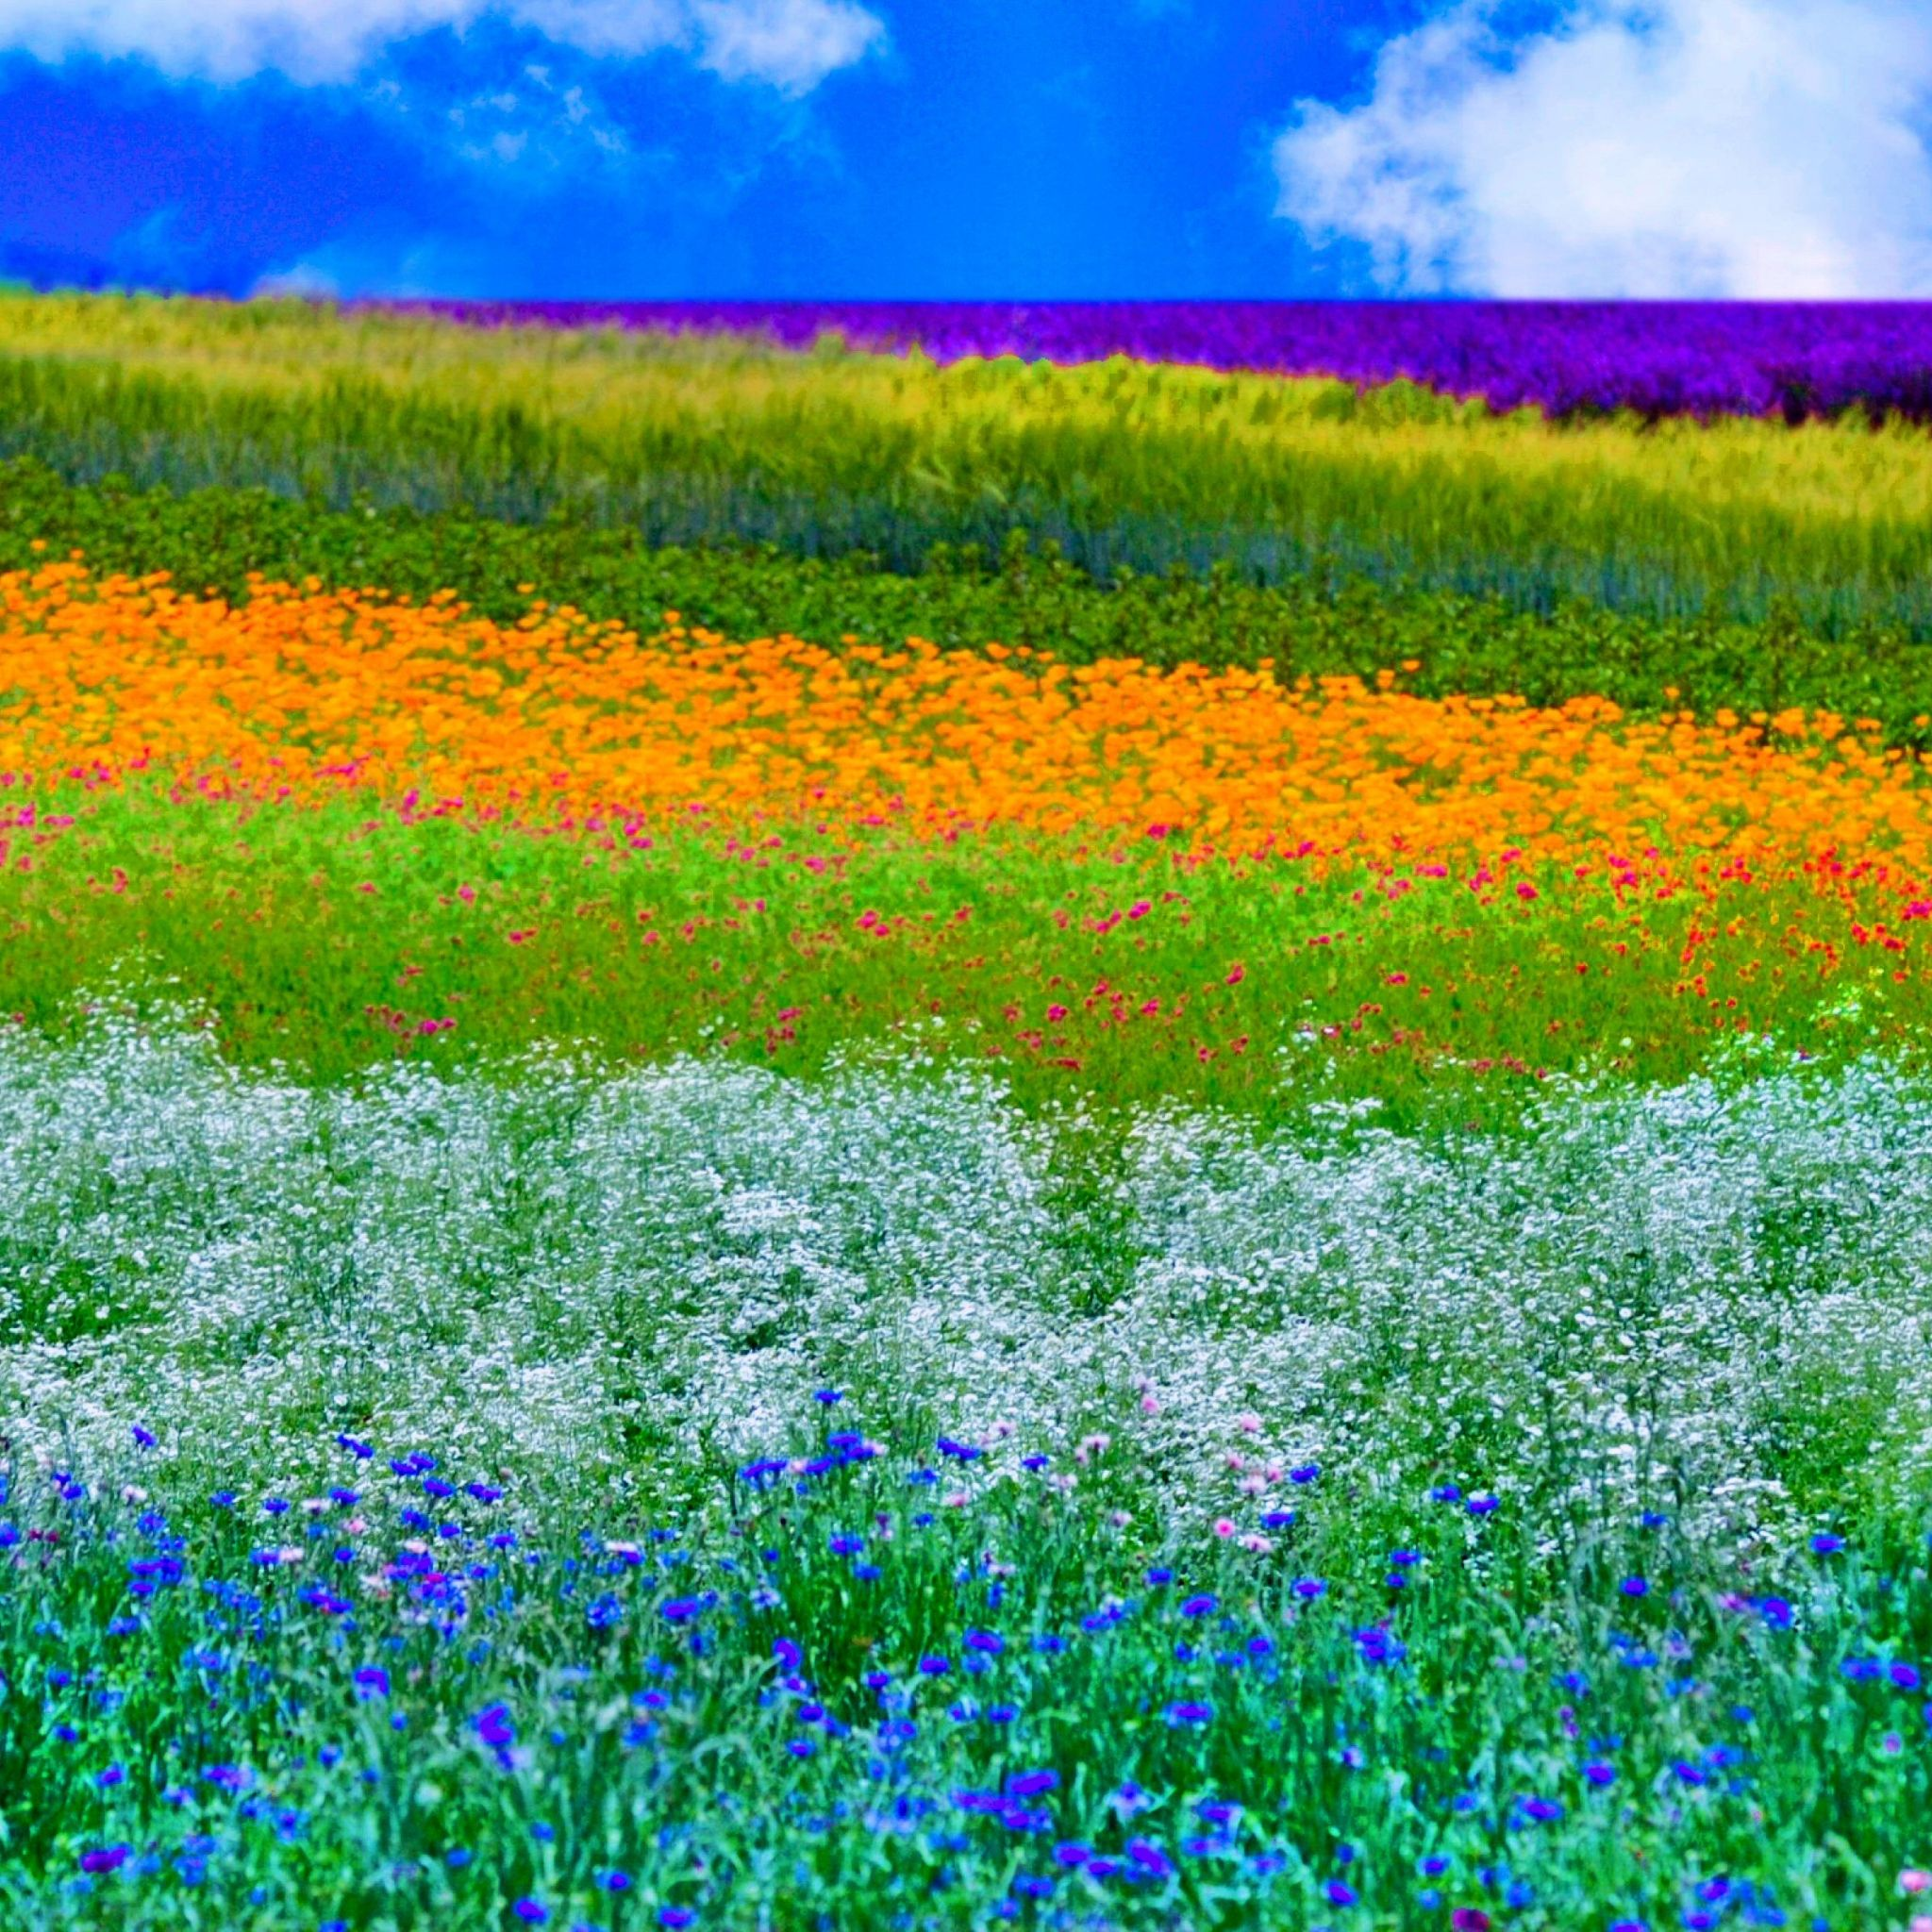 Beautiful Spring Field - Tap to see more dreams of spring ...